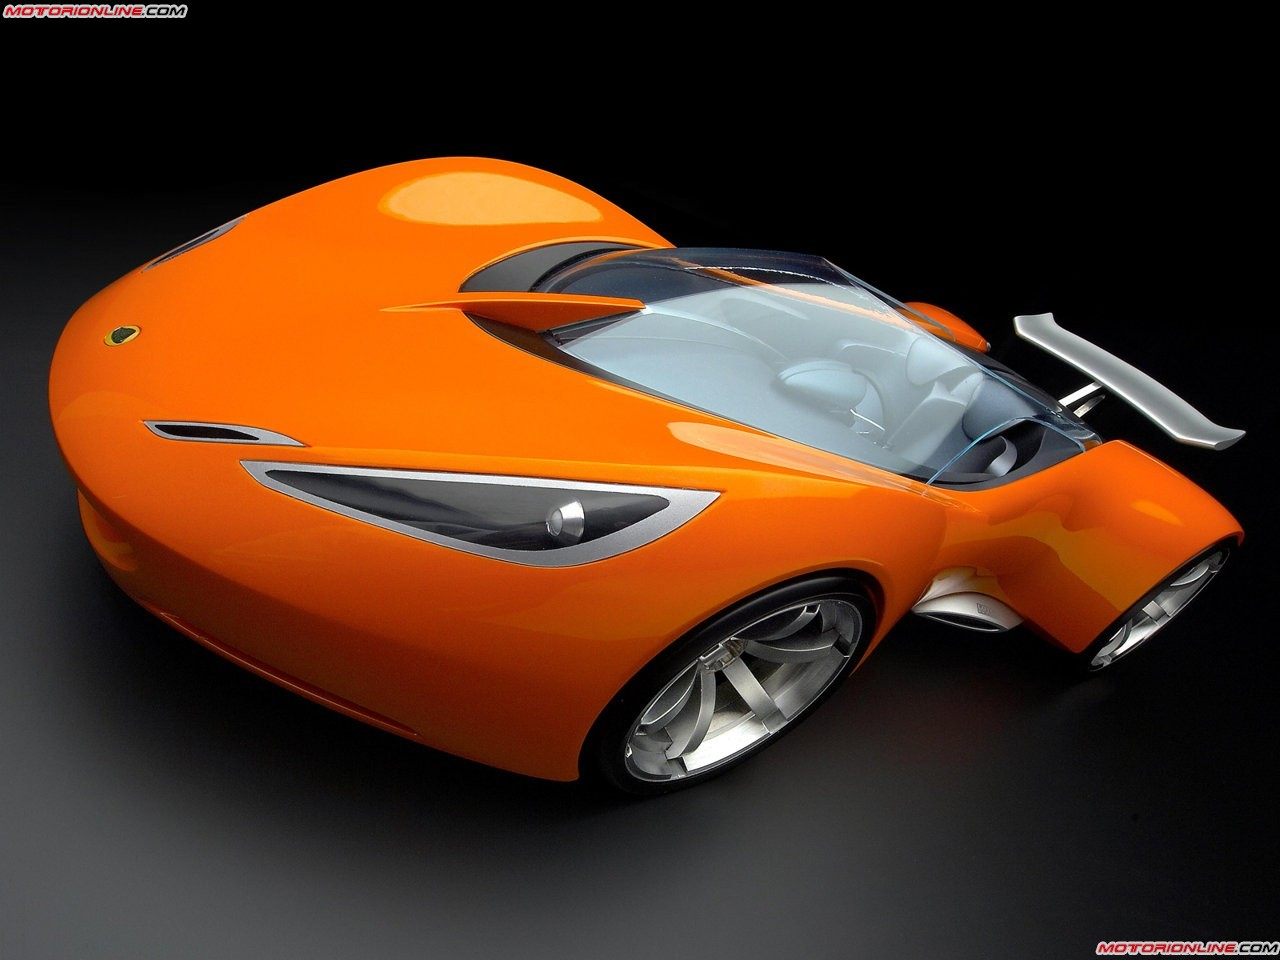 Lotus Hot Wheels Concept High Resolution Wallpaper Free